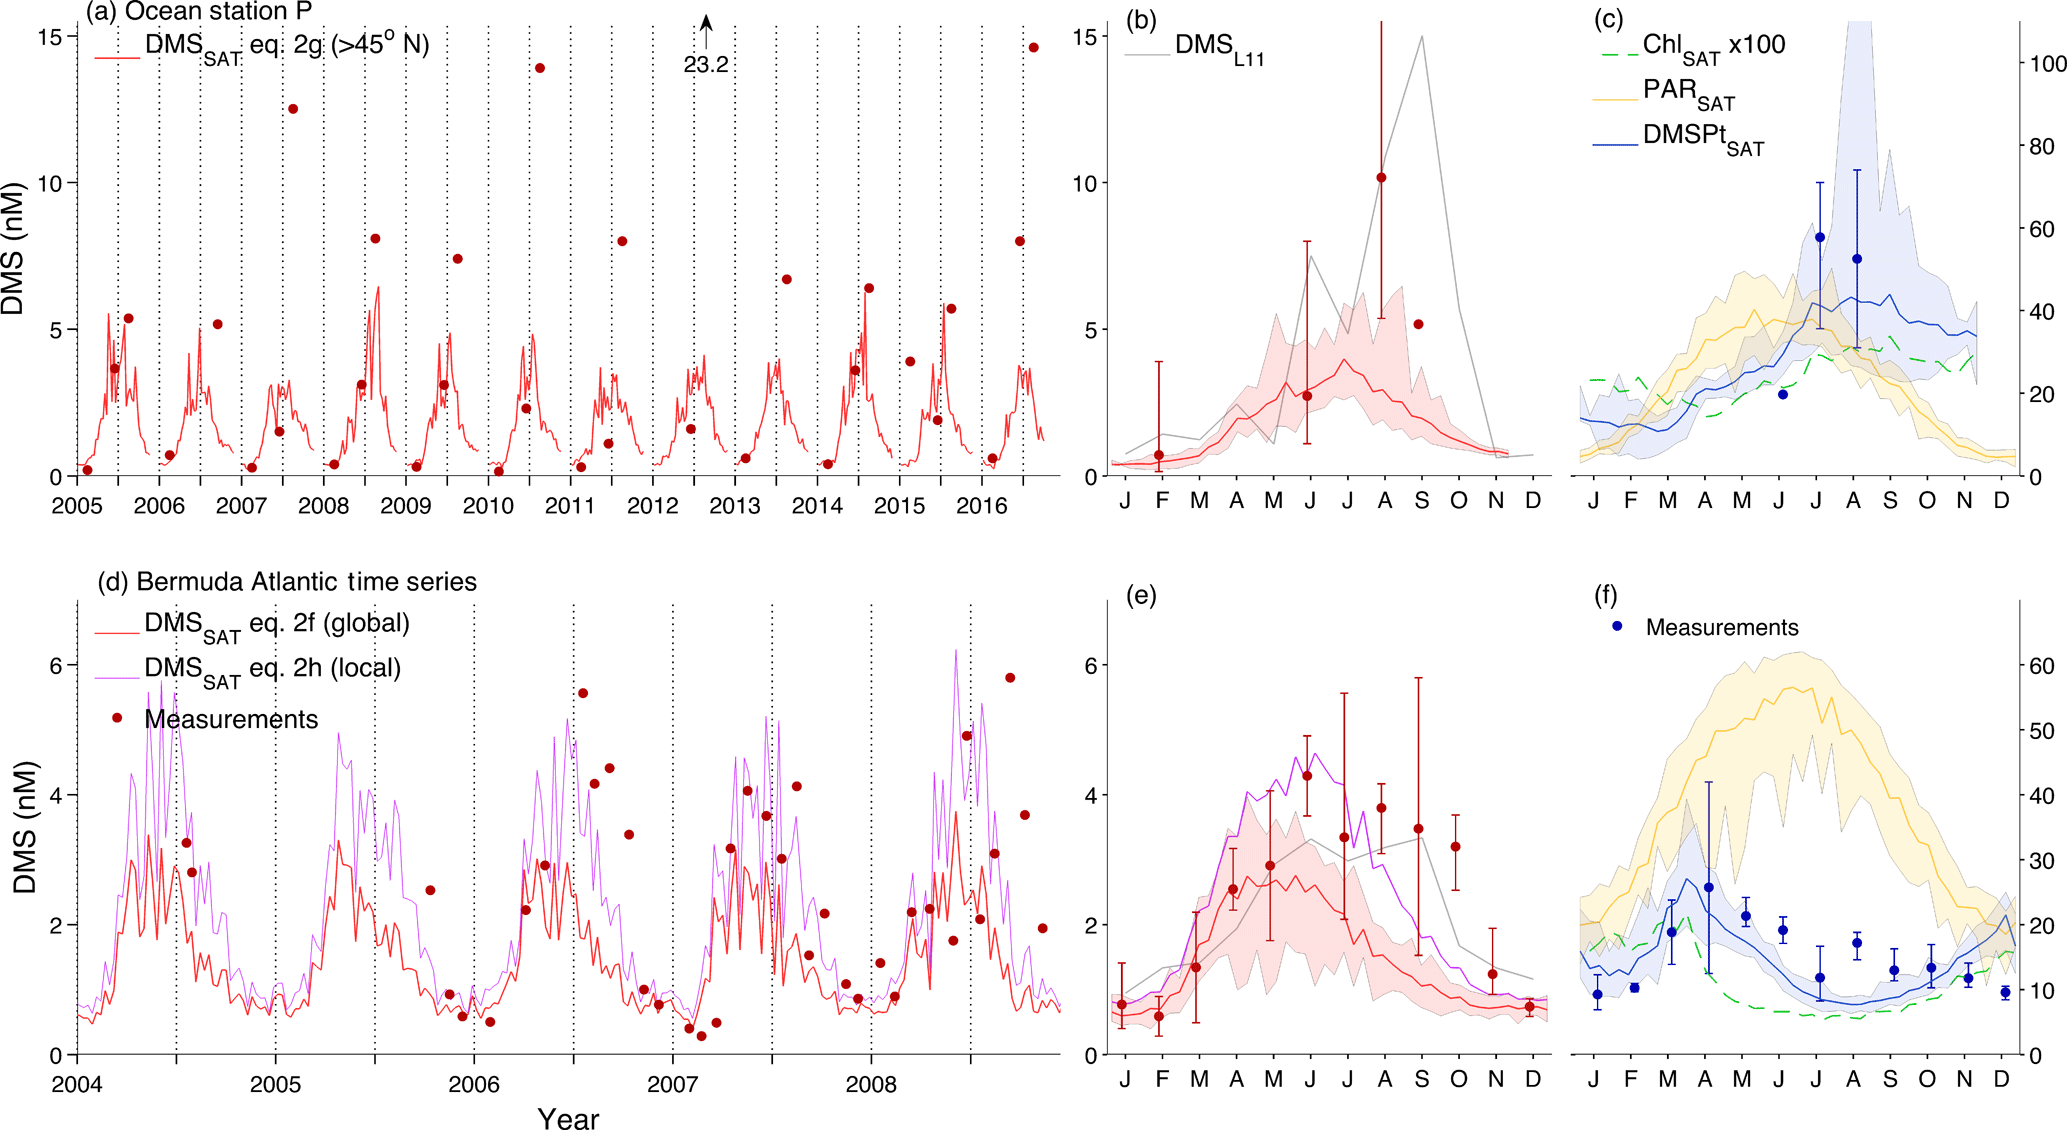 BG - Sea-surface dimethylsulfide (DMS) concentration from satellite